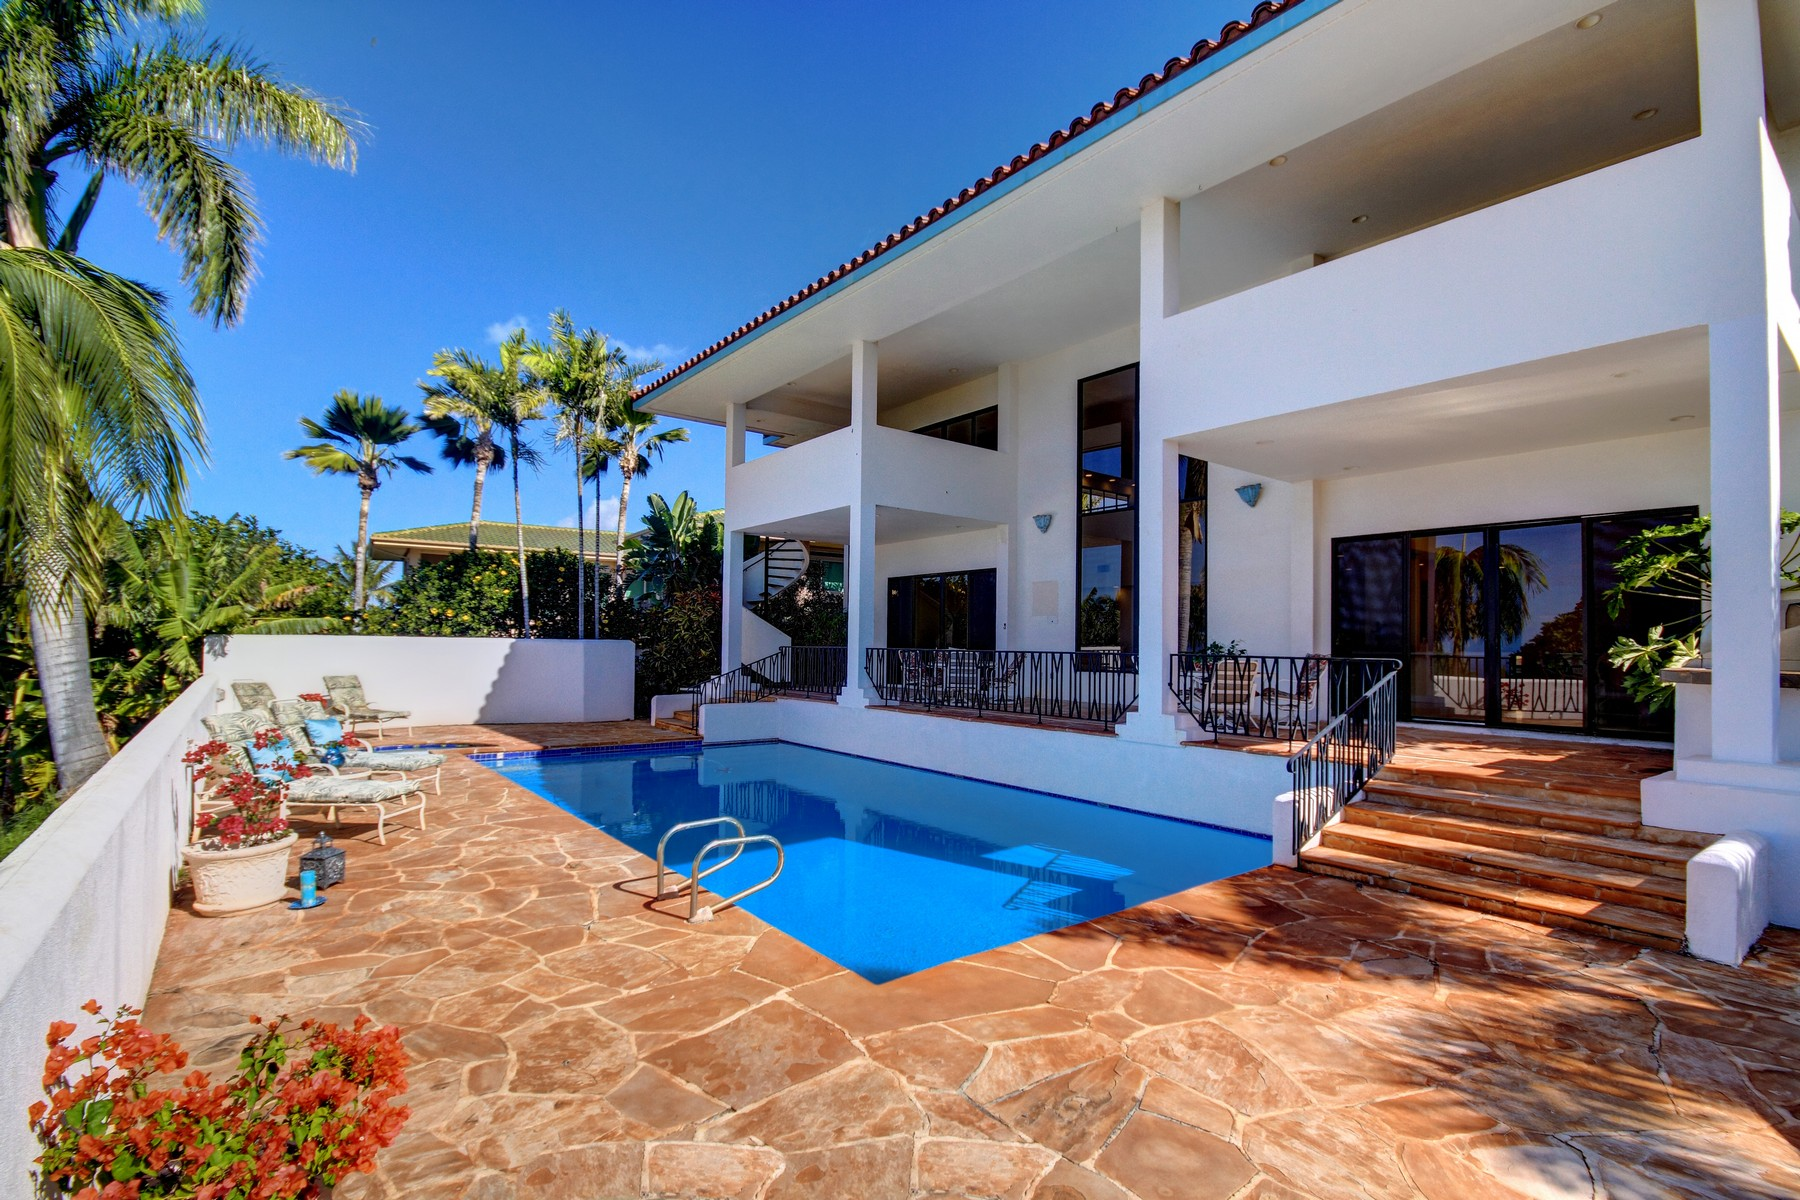 Single Family Home for Sale at Kaanapali Classic Contemporary Residence 78 S. Iwa Place Kaanapali, Hawaii 96761 United States